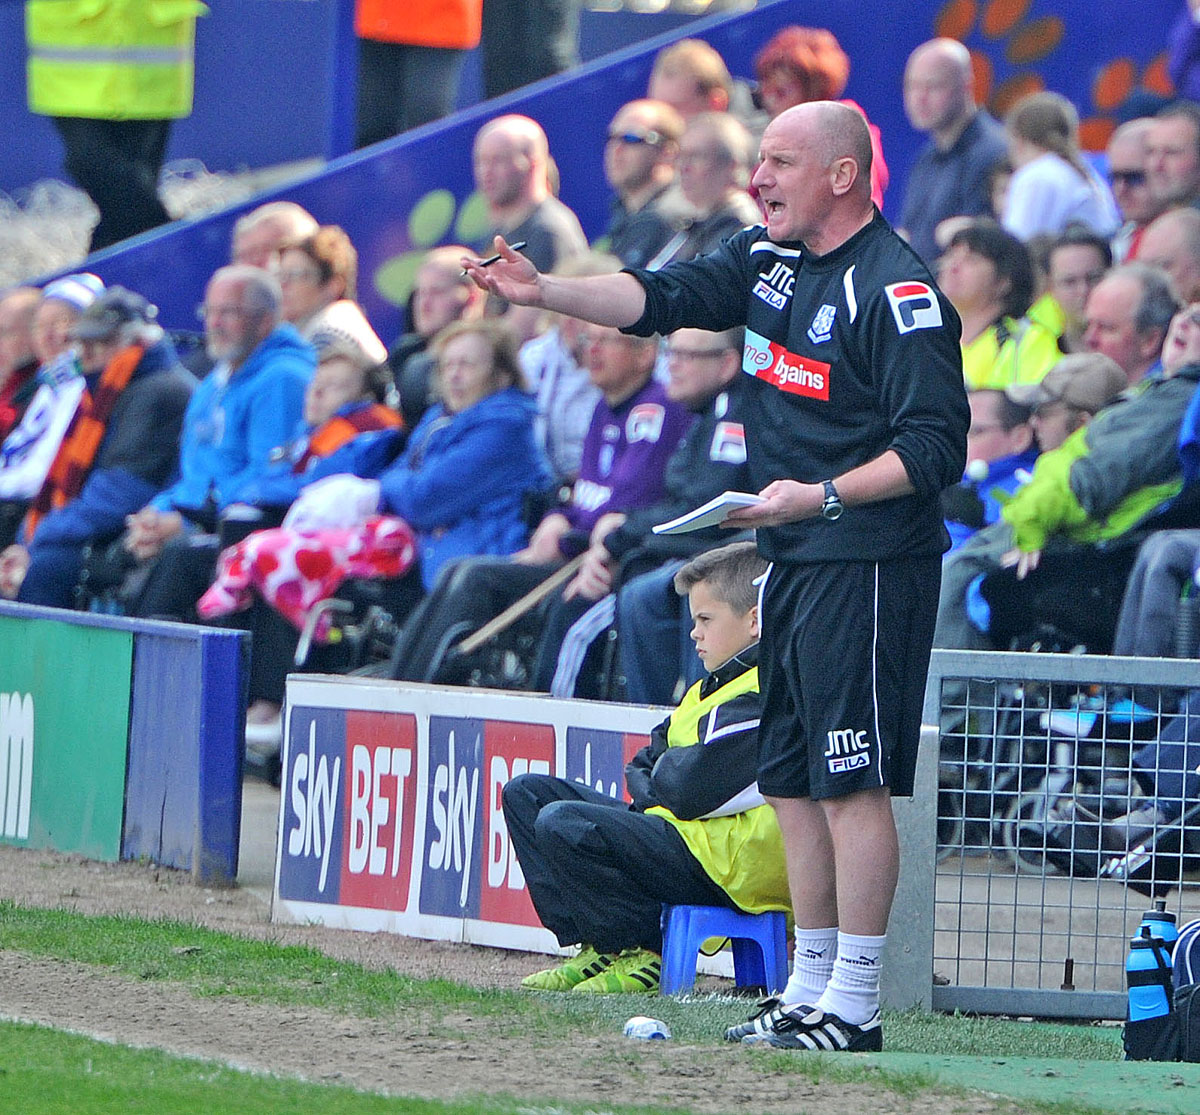 John McMahon gives instructions from the touchline during Tranmere's recent home game against Sheffield United. Picture: Paul Heaps